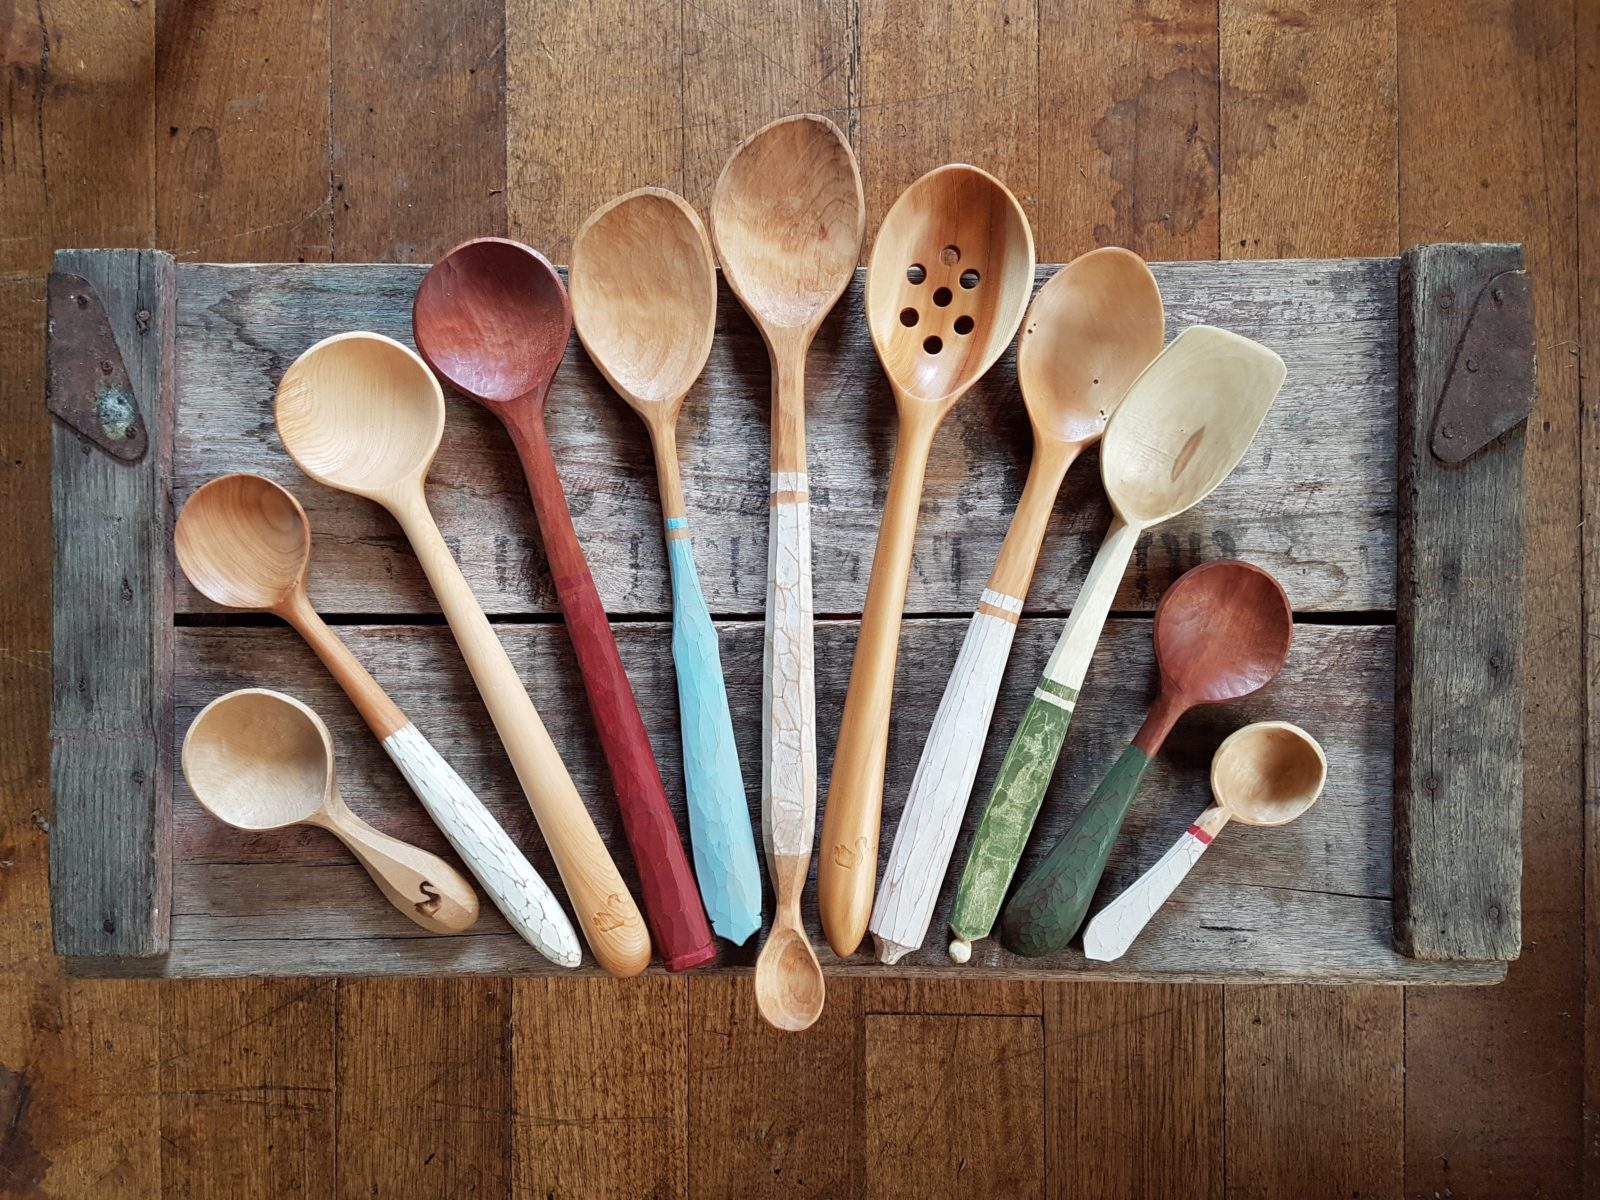 Spoons in all sizes -which size will you choose to carve?